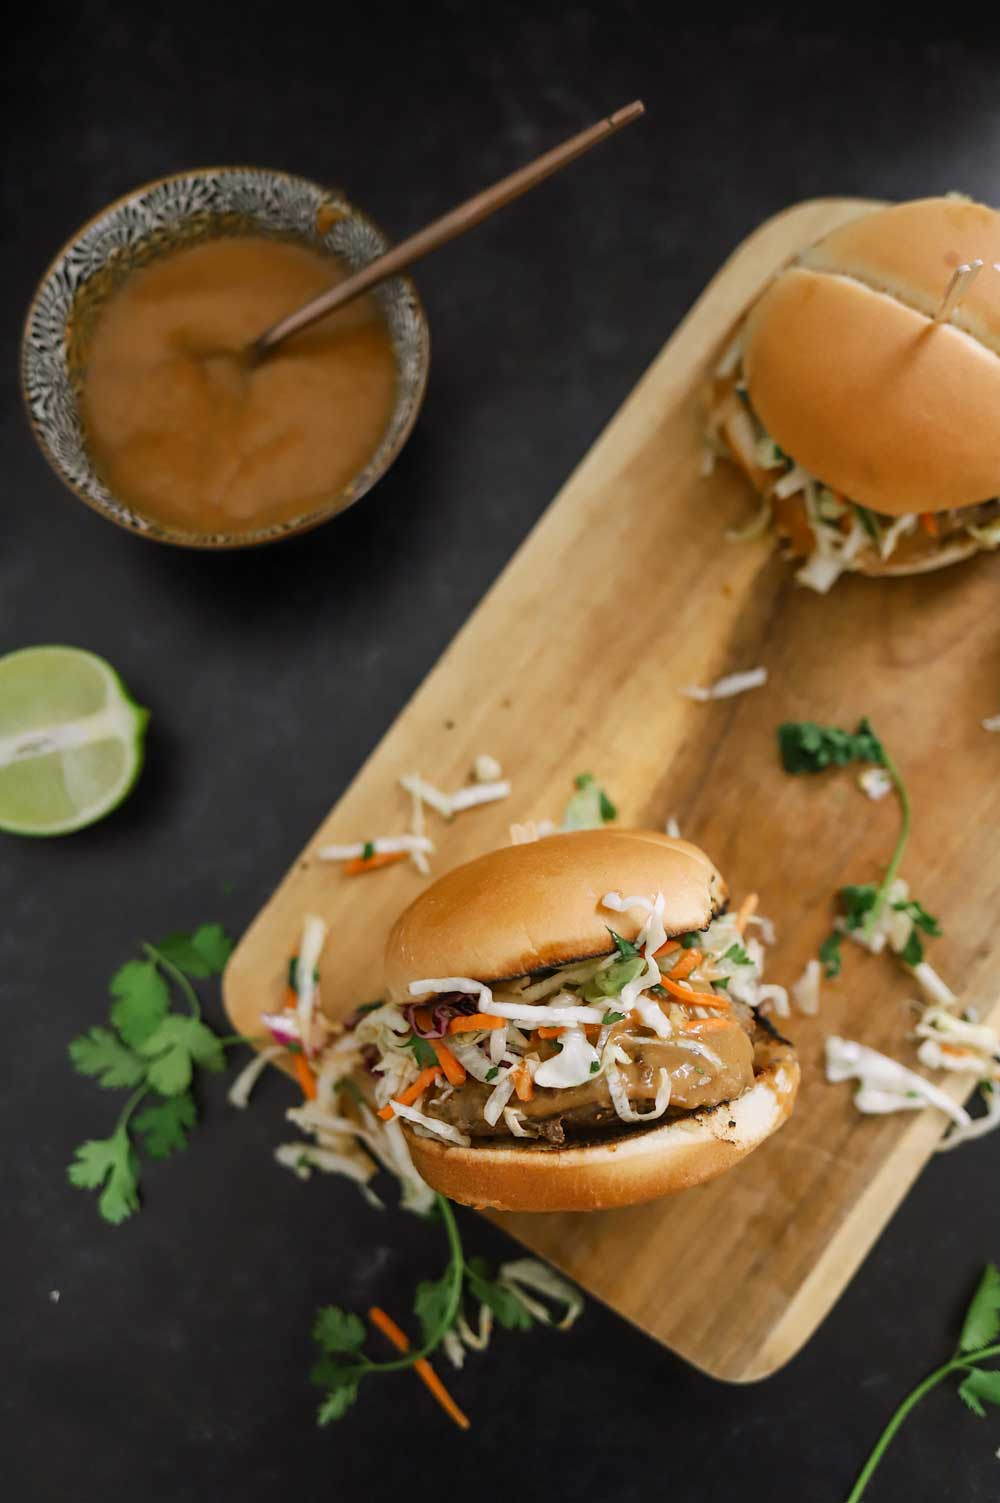 Thai Burgers With Peanut Sauce and 5 Barbeque Side Ideas for delicious family BBQ dinner ideas from top Florida lifestyle and food blogger Tabitha Blue of Fresh Mommy Blog | Thai Burgers by popular Florida lifestyle blog, Fresh Mommy Blog: image of Thai Burgers on a wooden serving board.